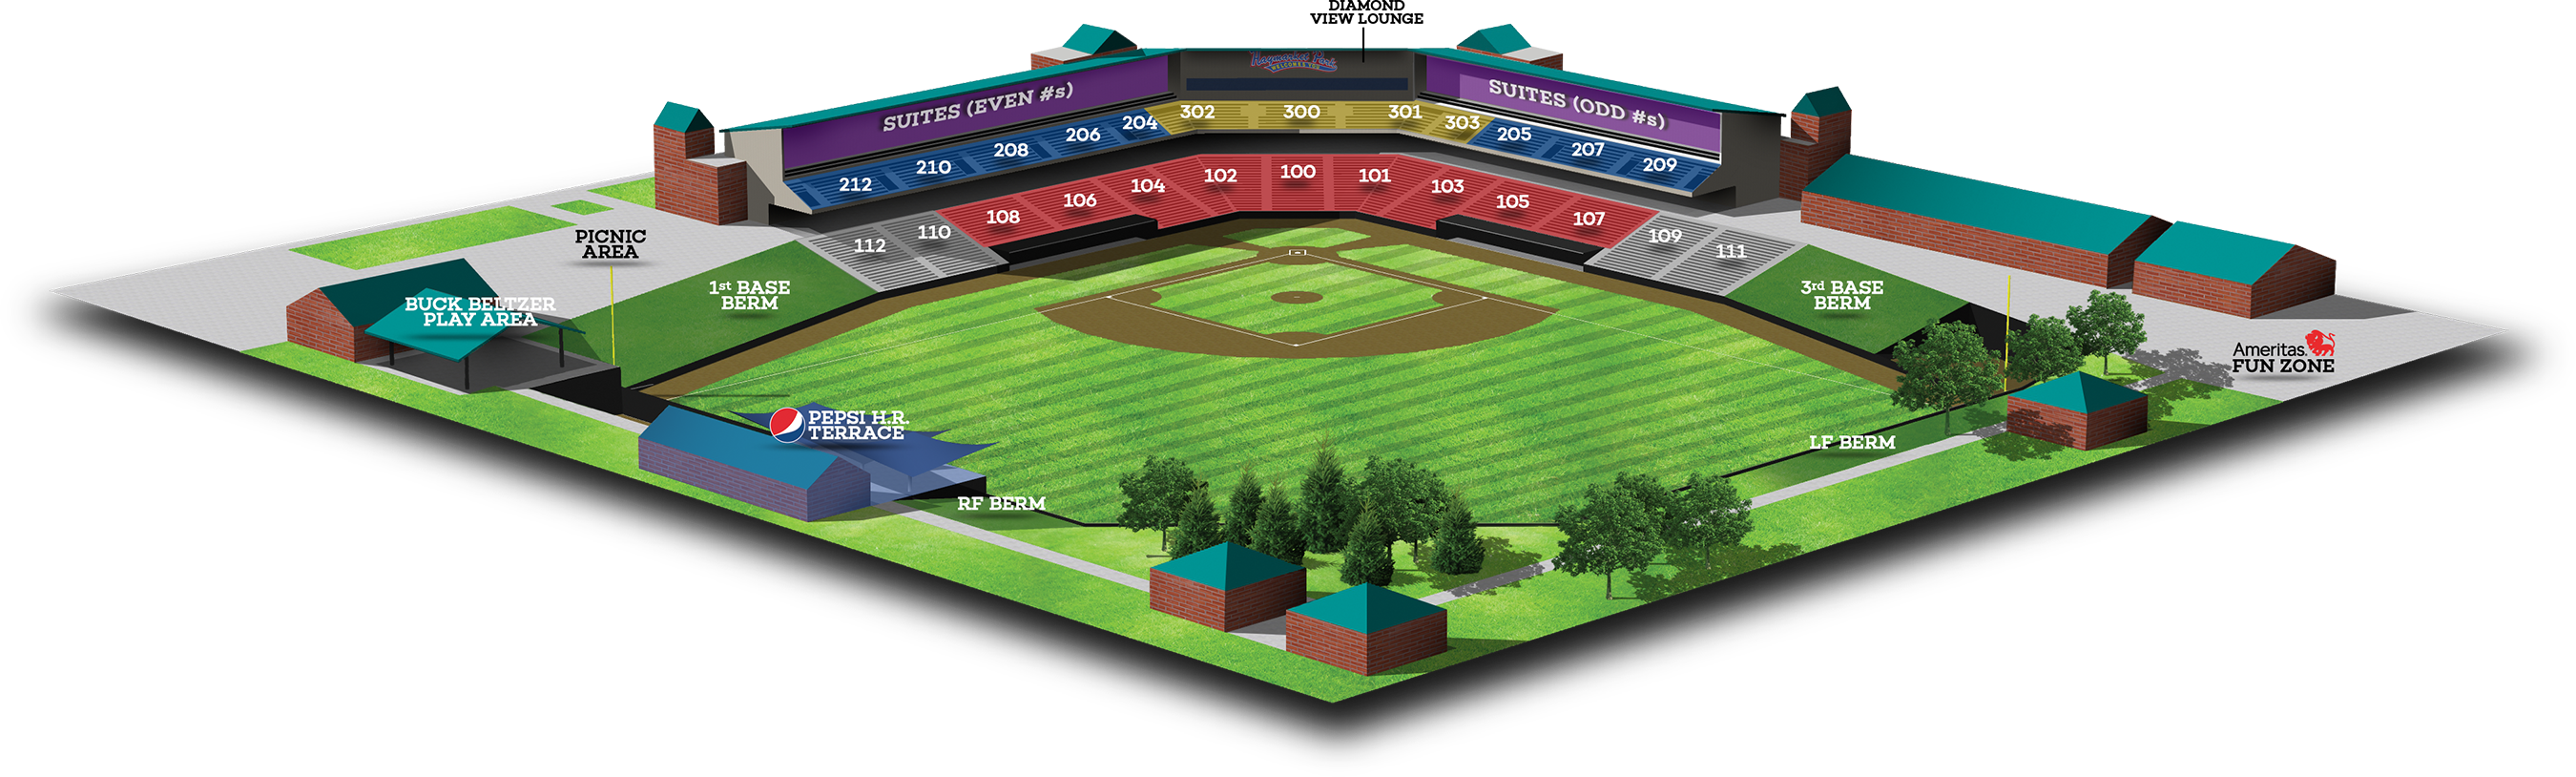 3D Stadium Seating Chart